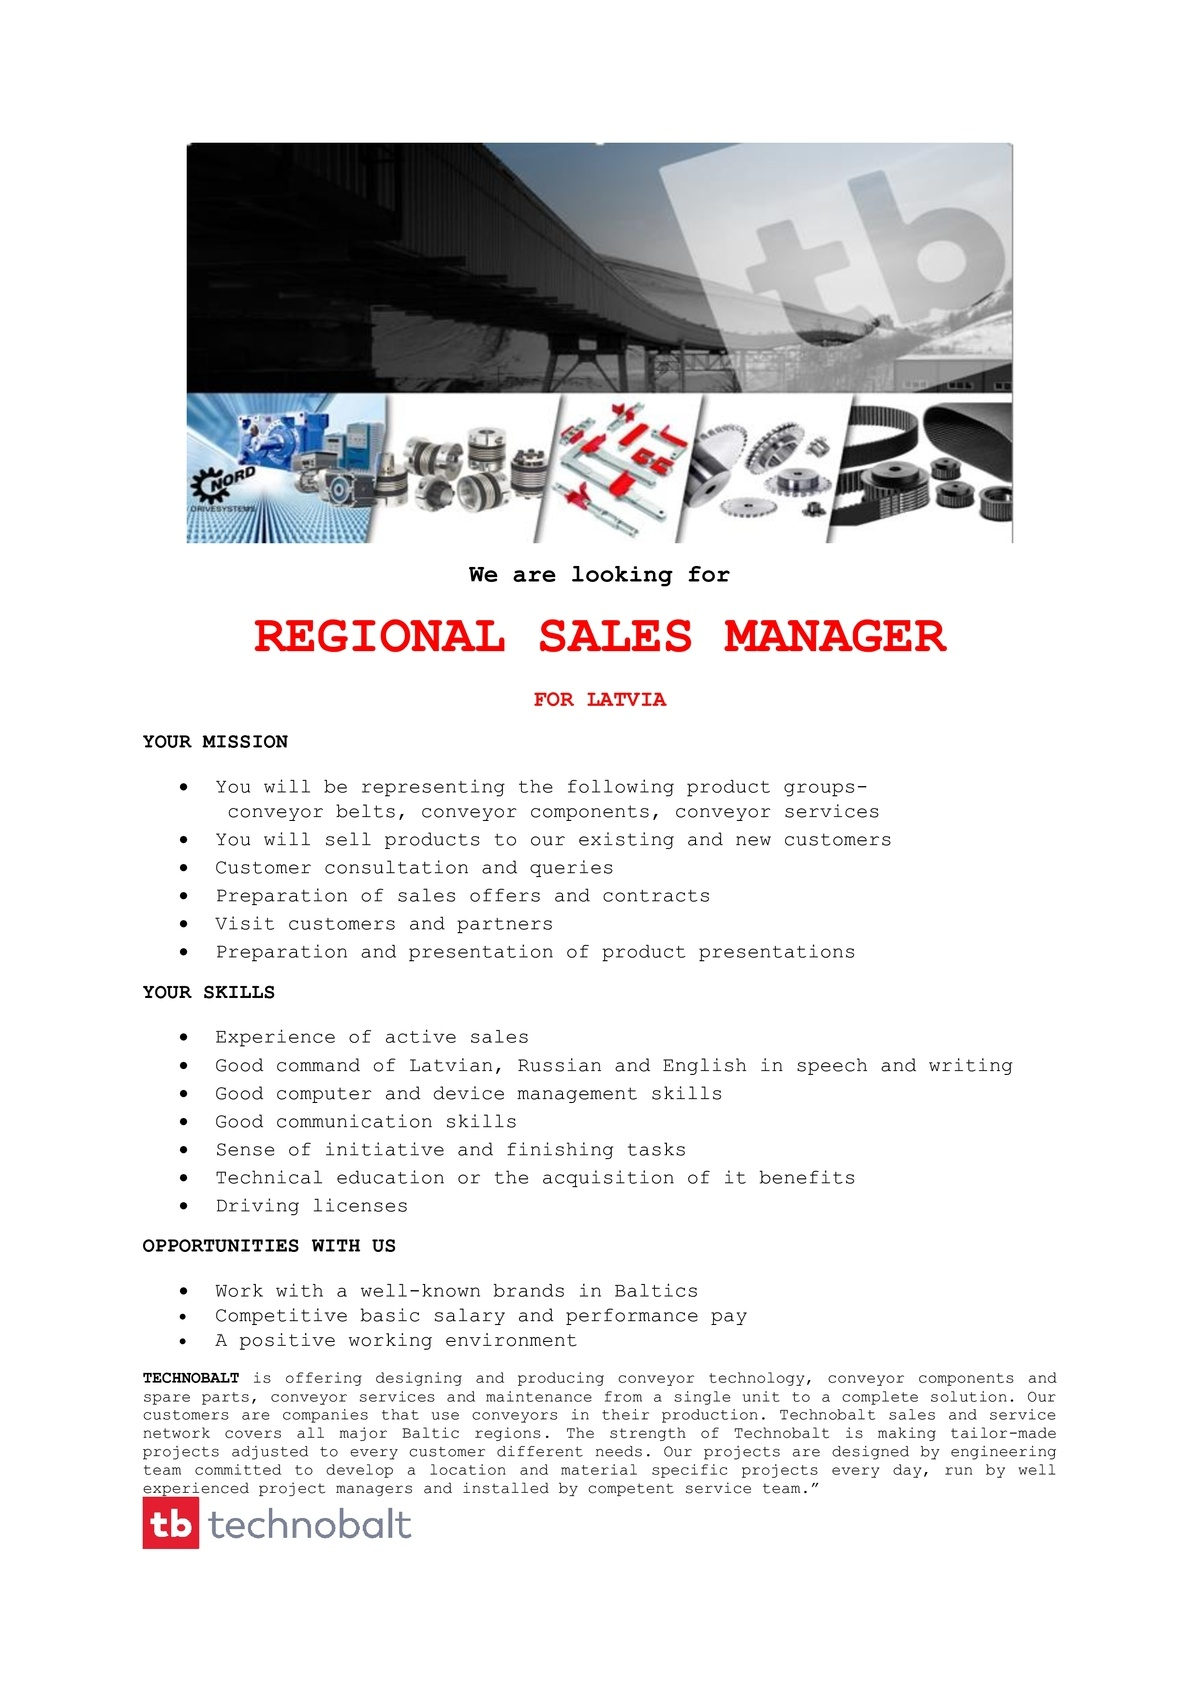 CV Market´s client Regional Sales Manager for Latvia